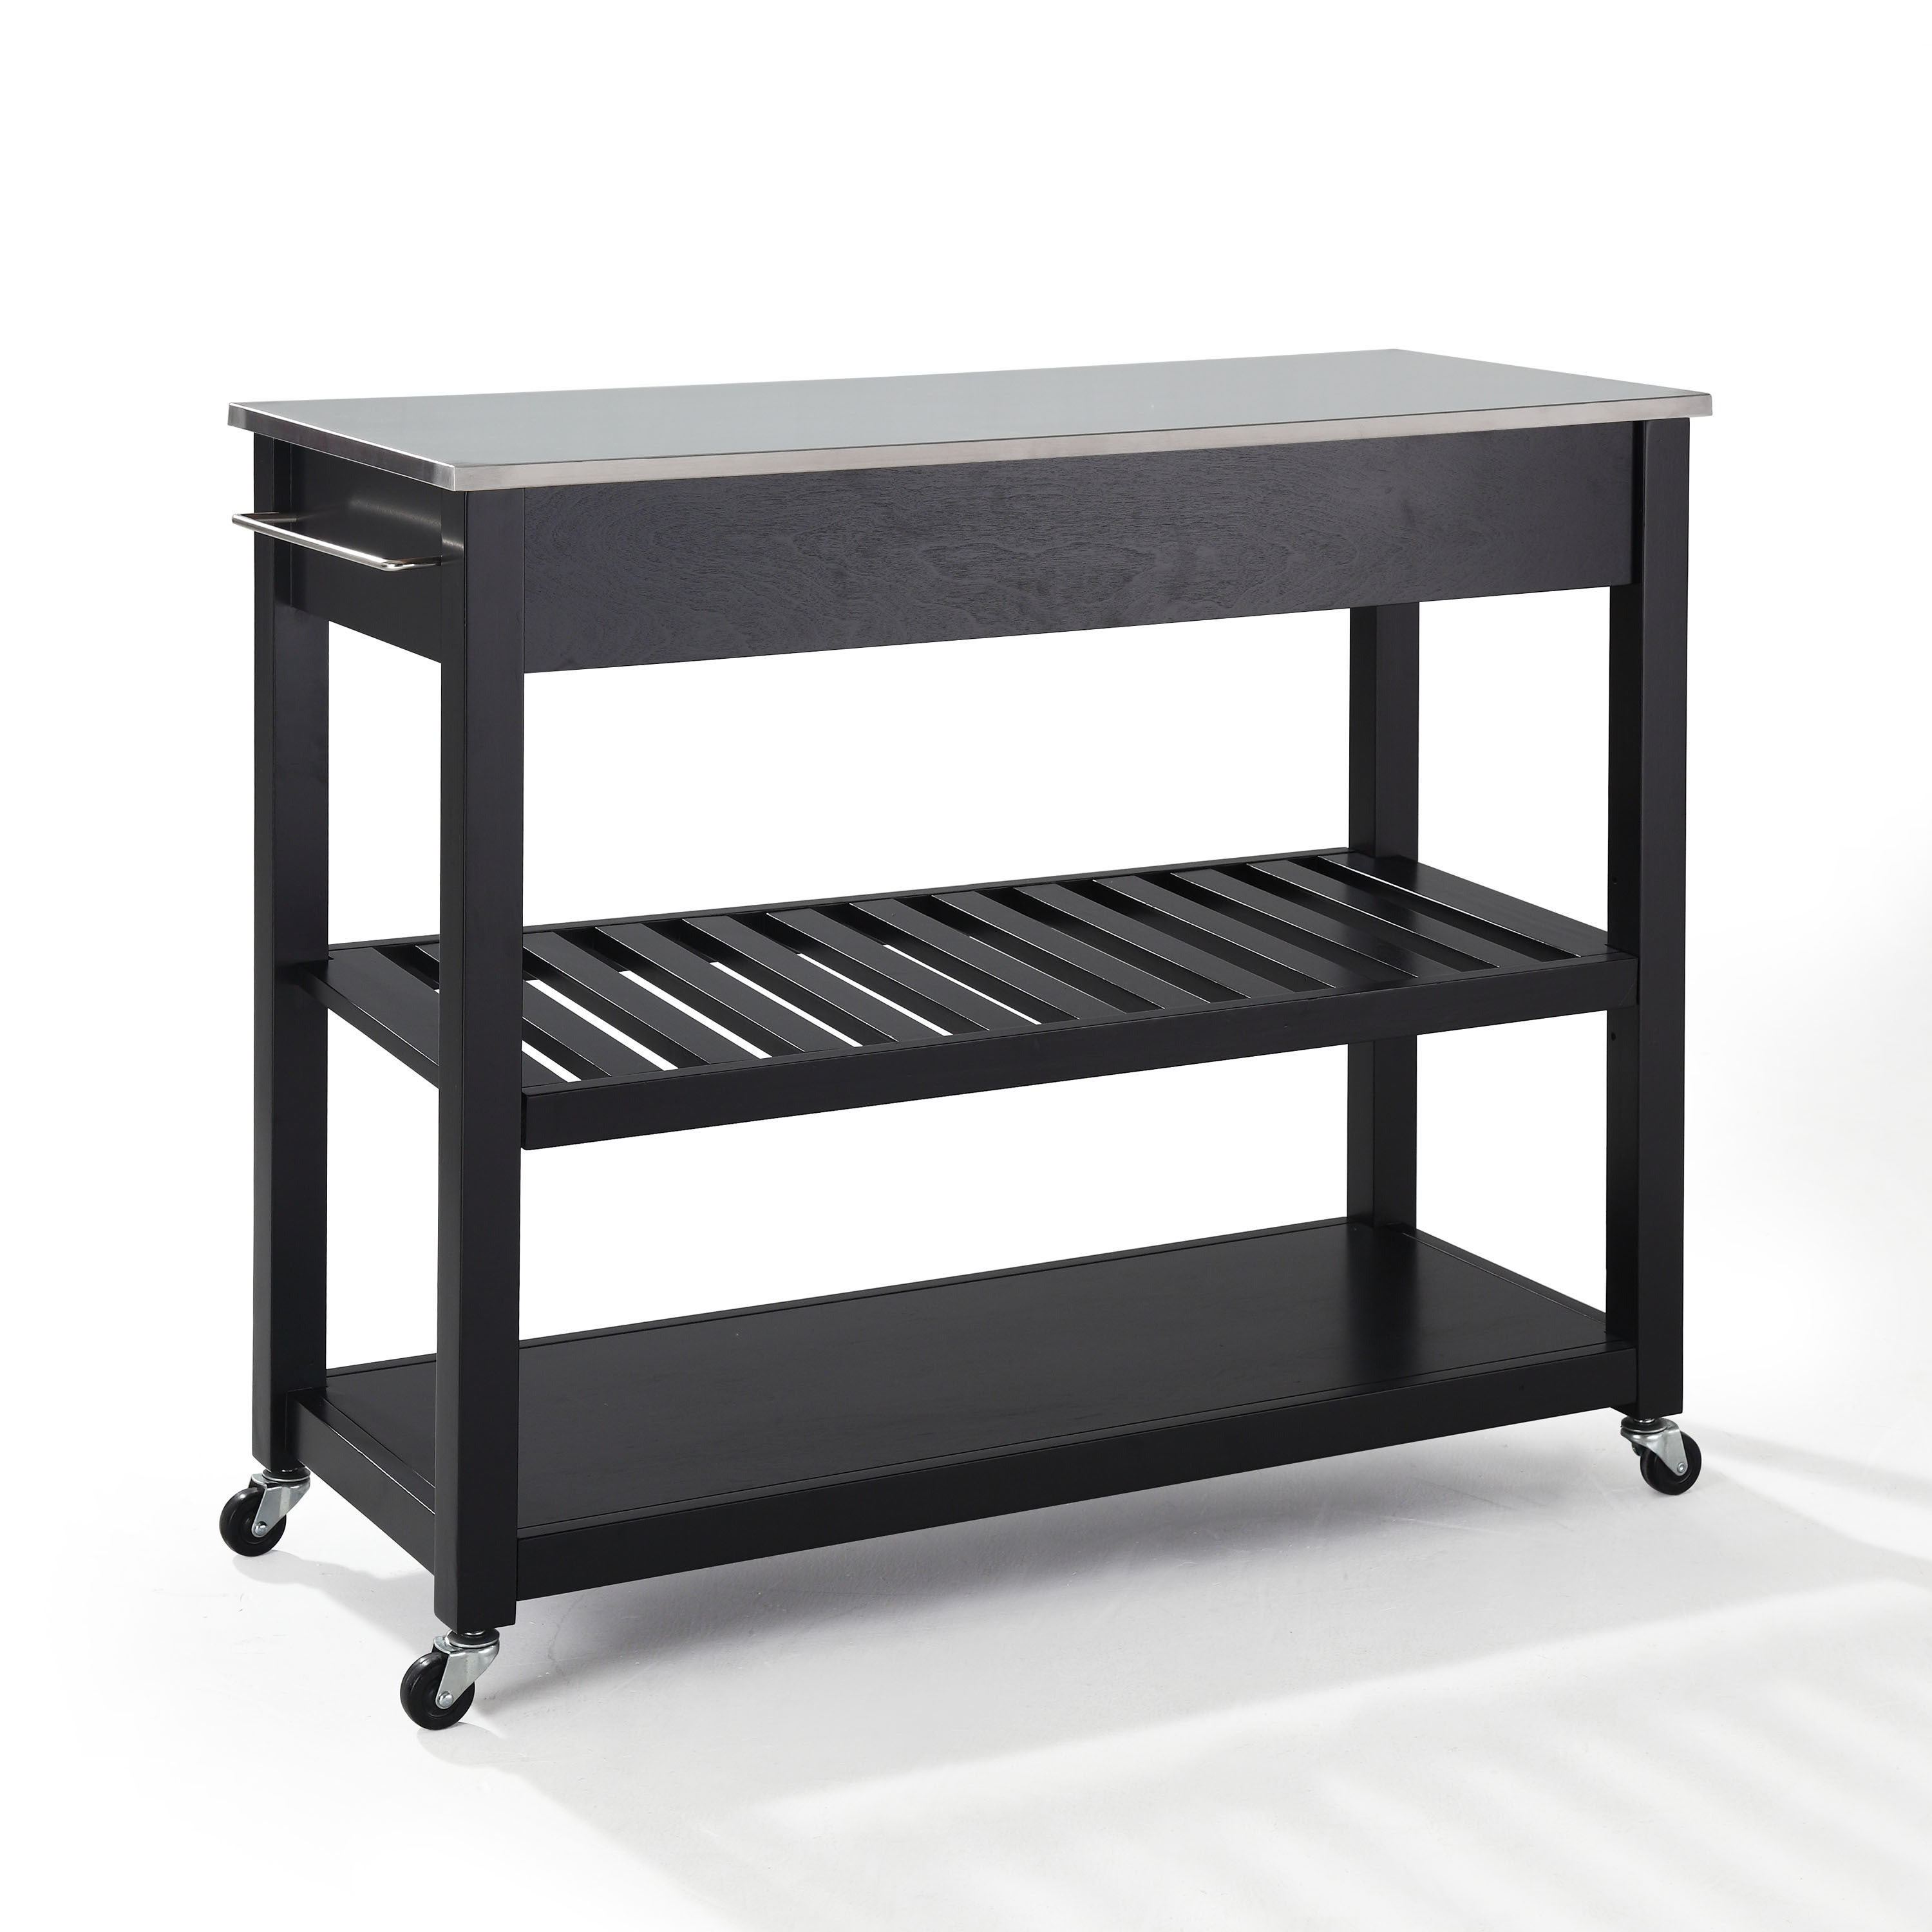 Black Finish Stainless Steel Top Kitchen Cart Island with Optional